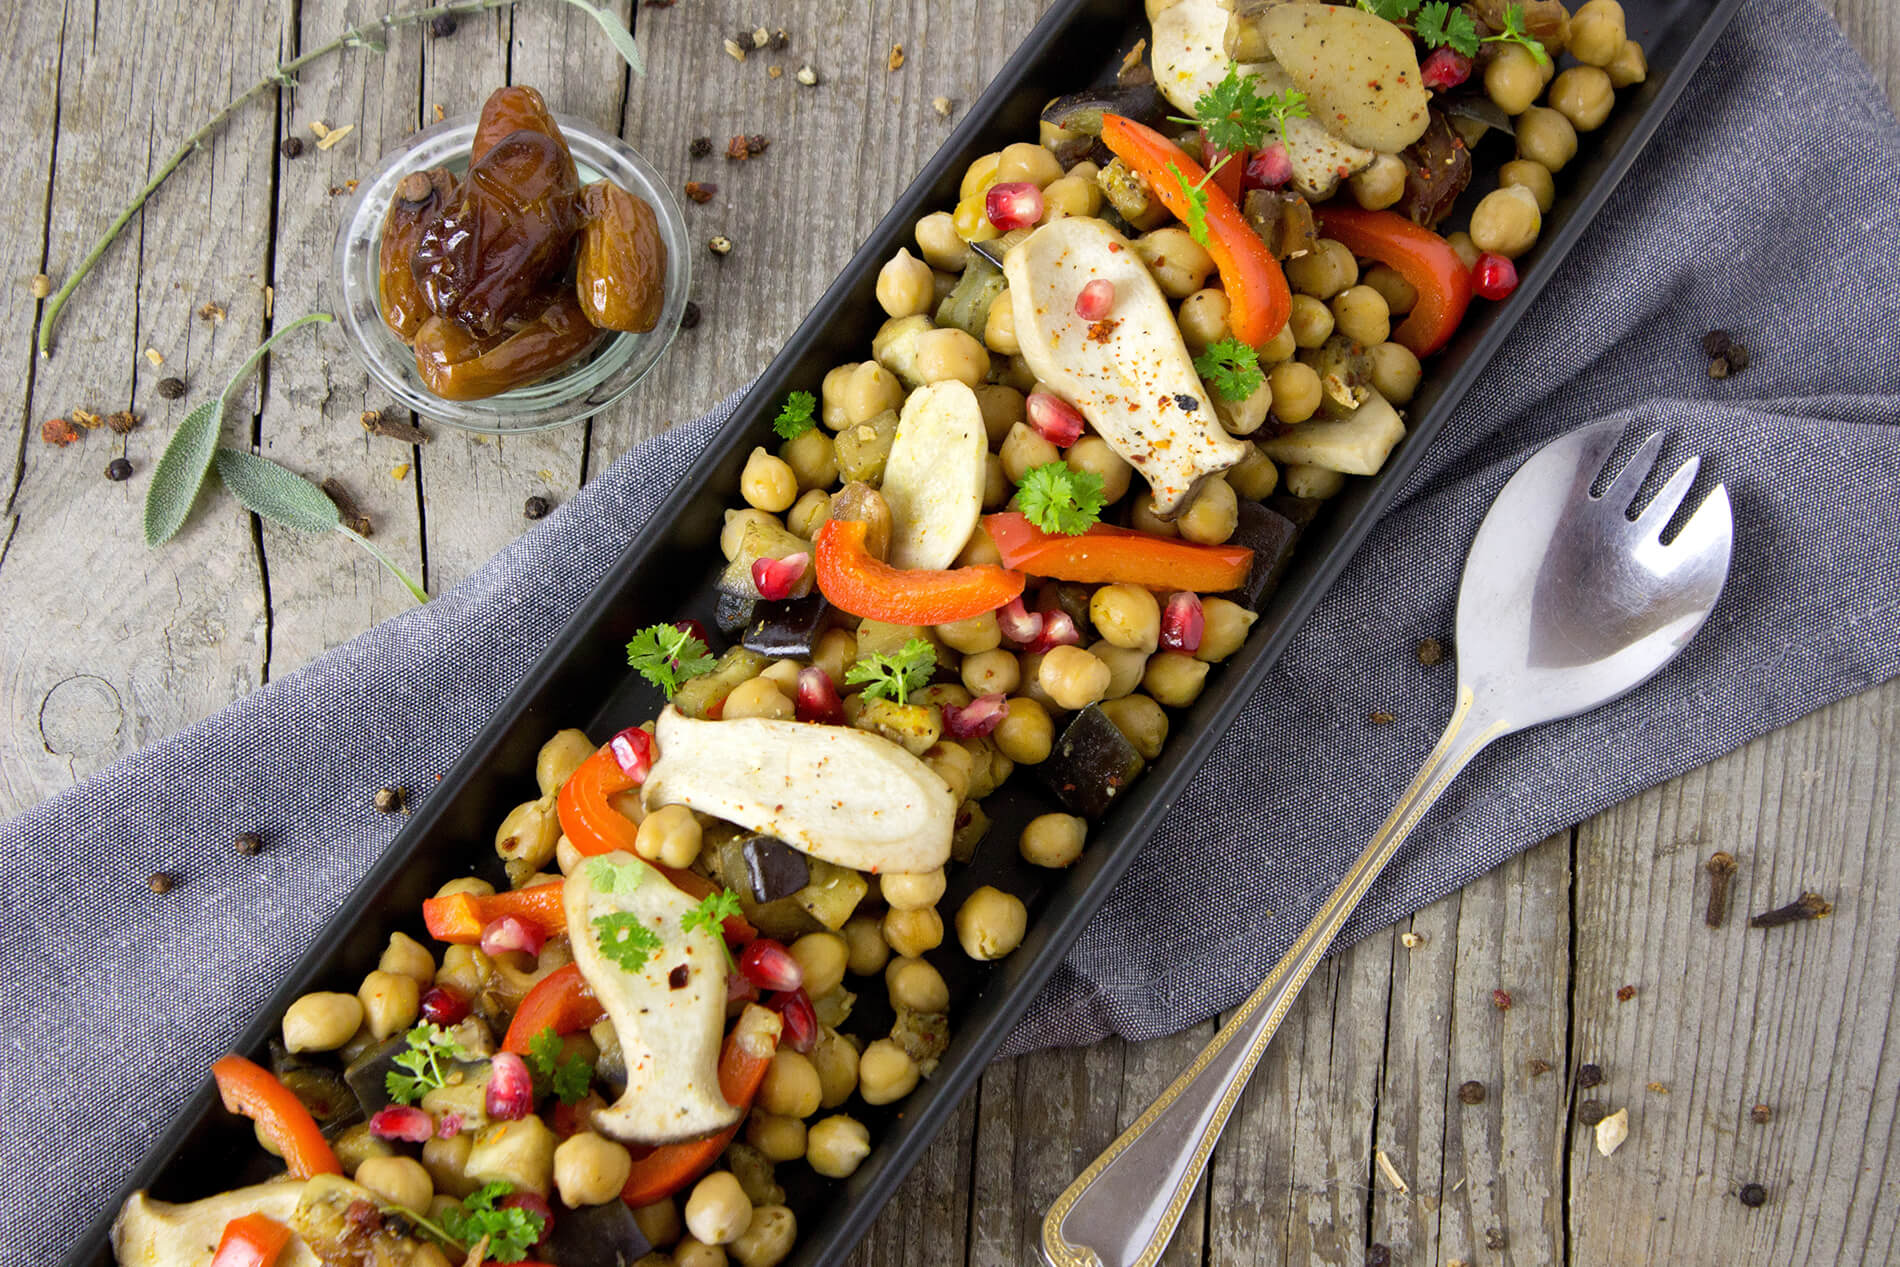 Chickpeas a good source of protein